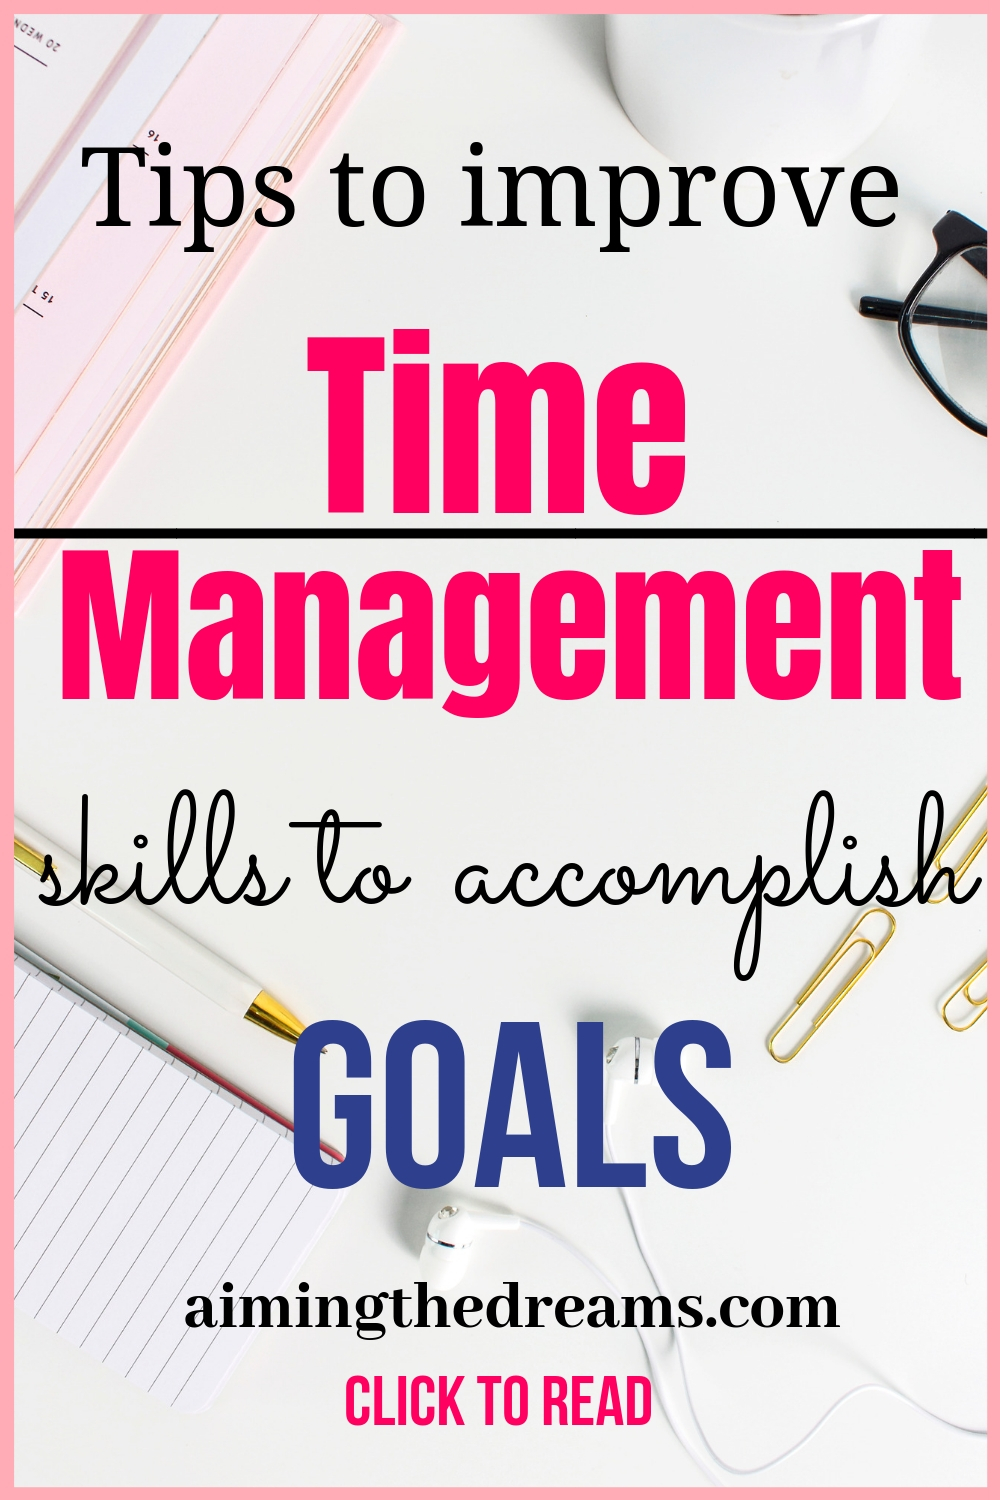 Tips to improve Time management skills to accomplish goals.